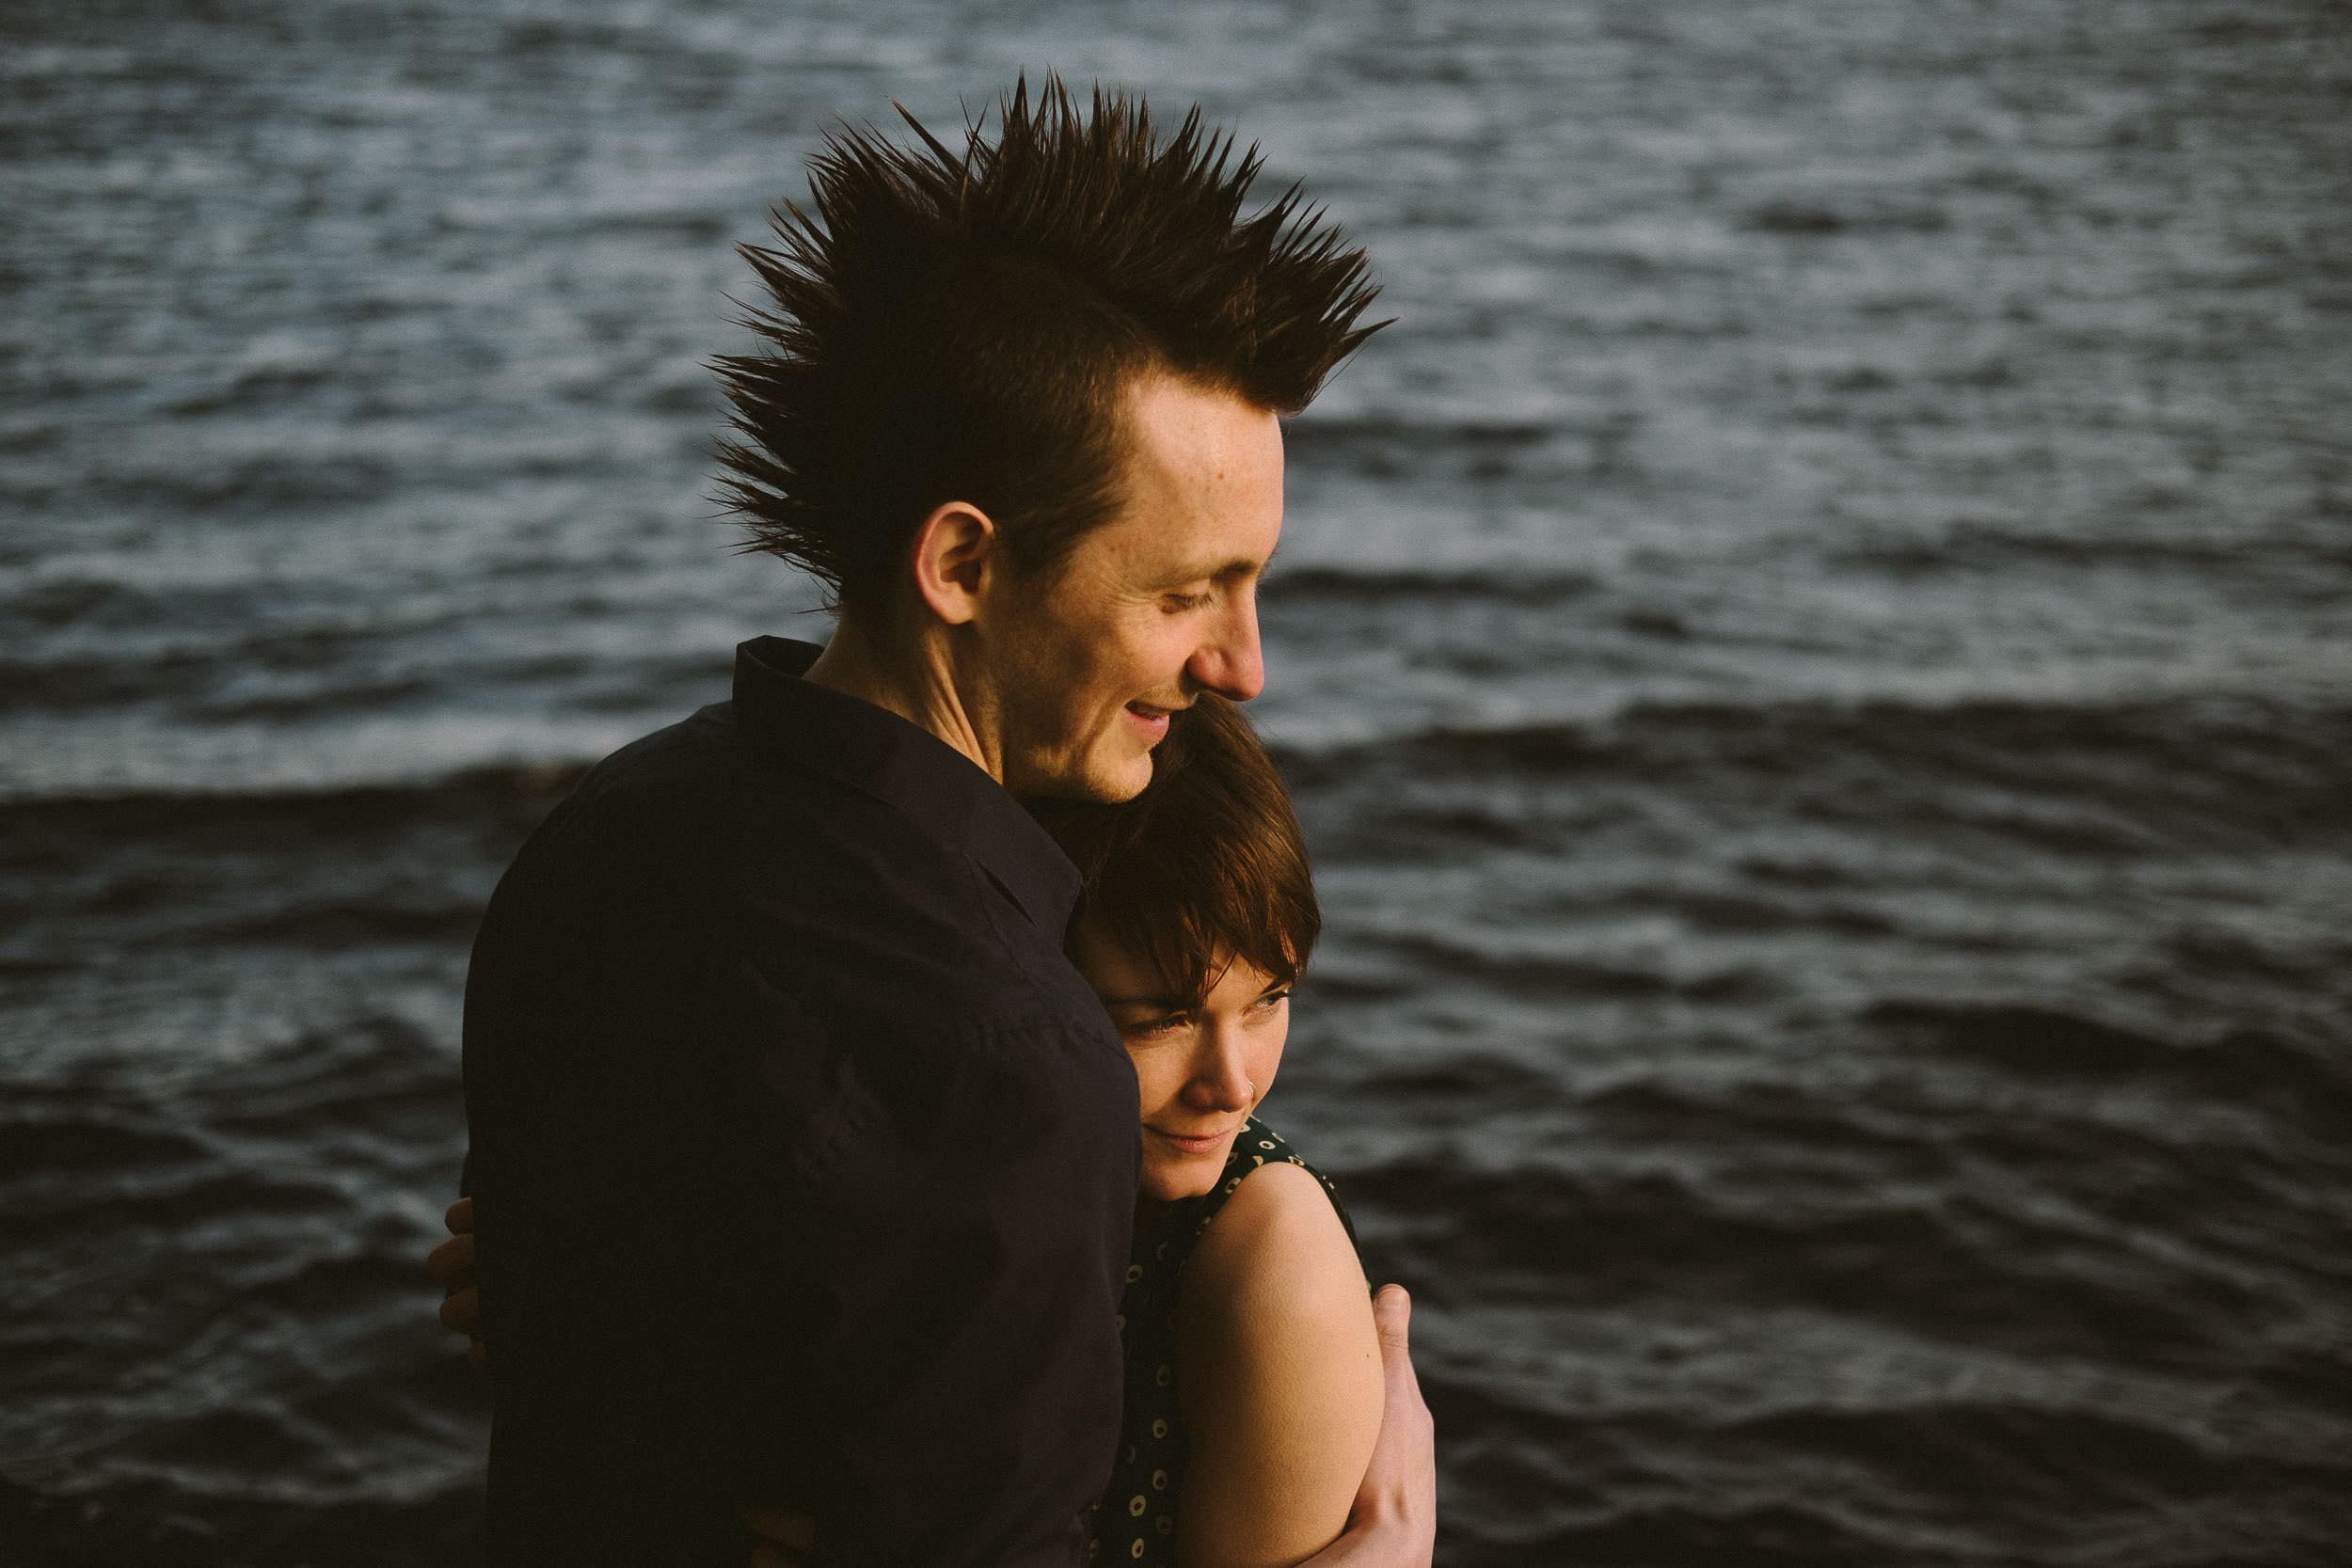 Punk couple cuddle with water in background